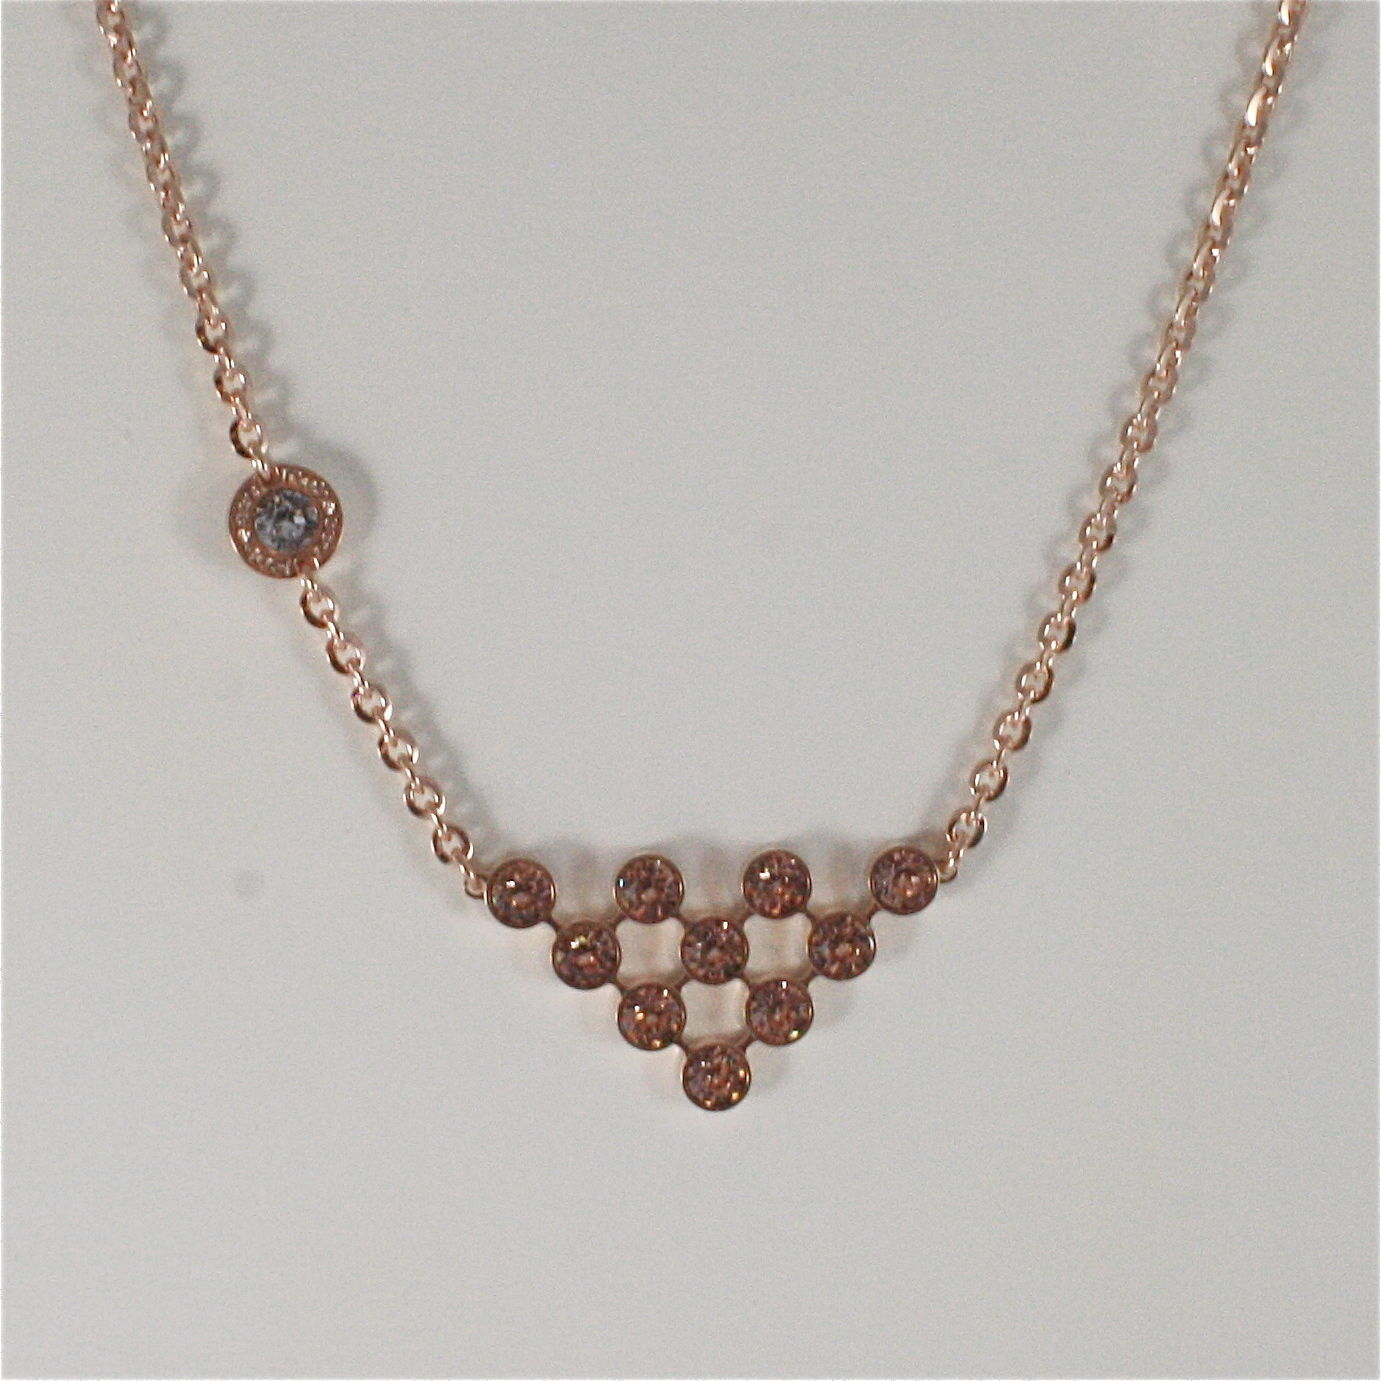 ROSE GOLD PLATED BRONZE REBECCA CLUSTER NECKLACE BPBKRP05 MADE IN ITALY 18.90